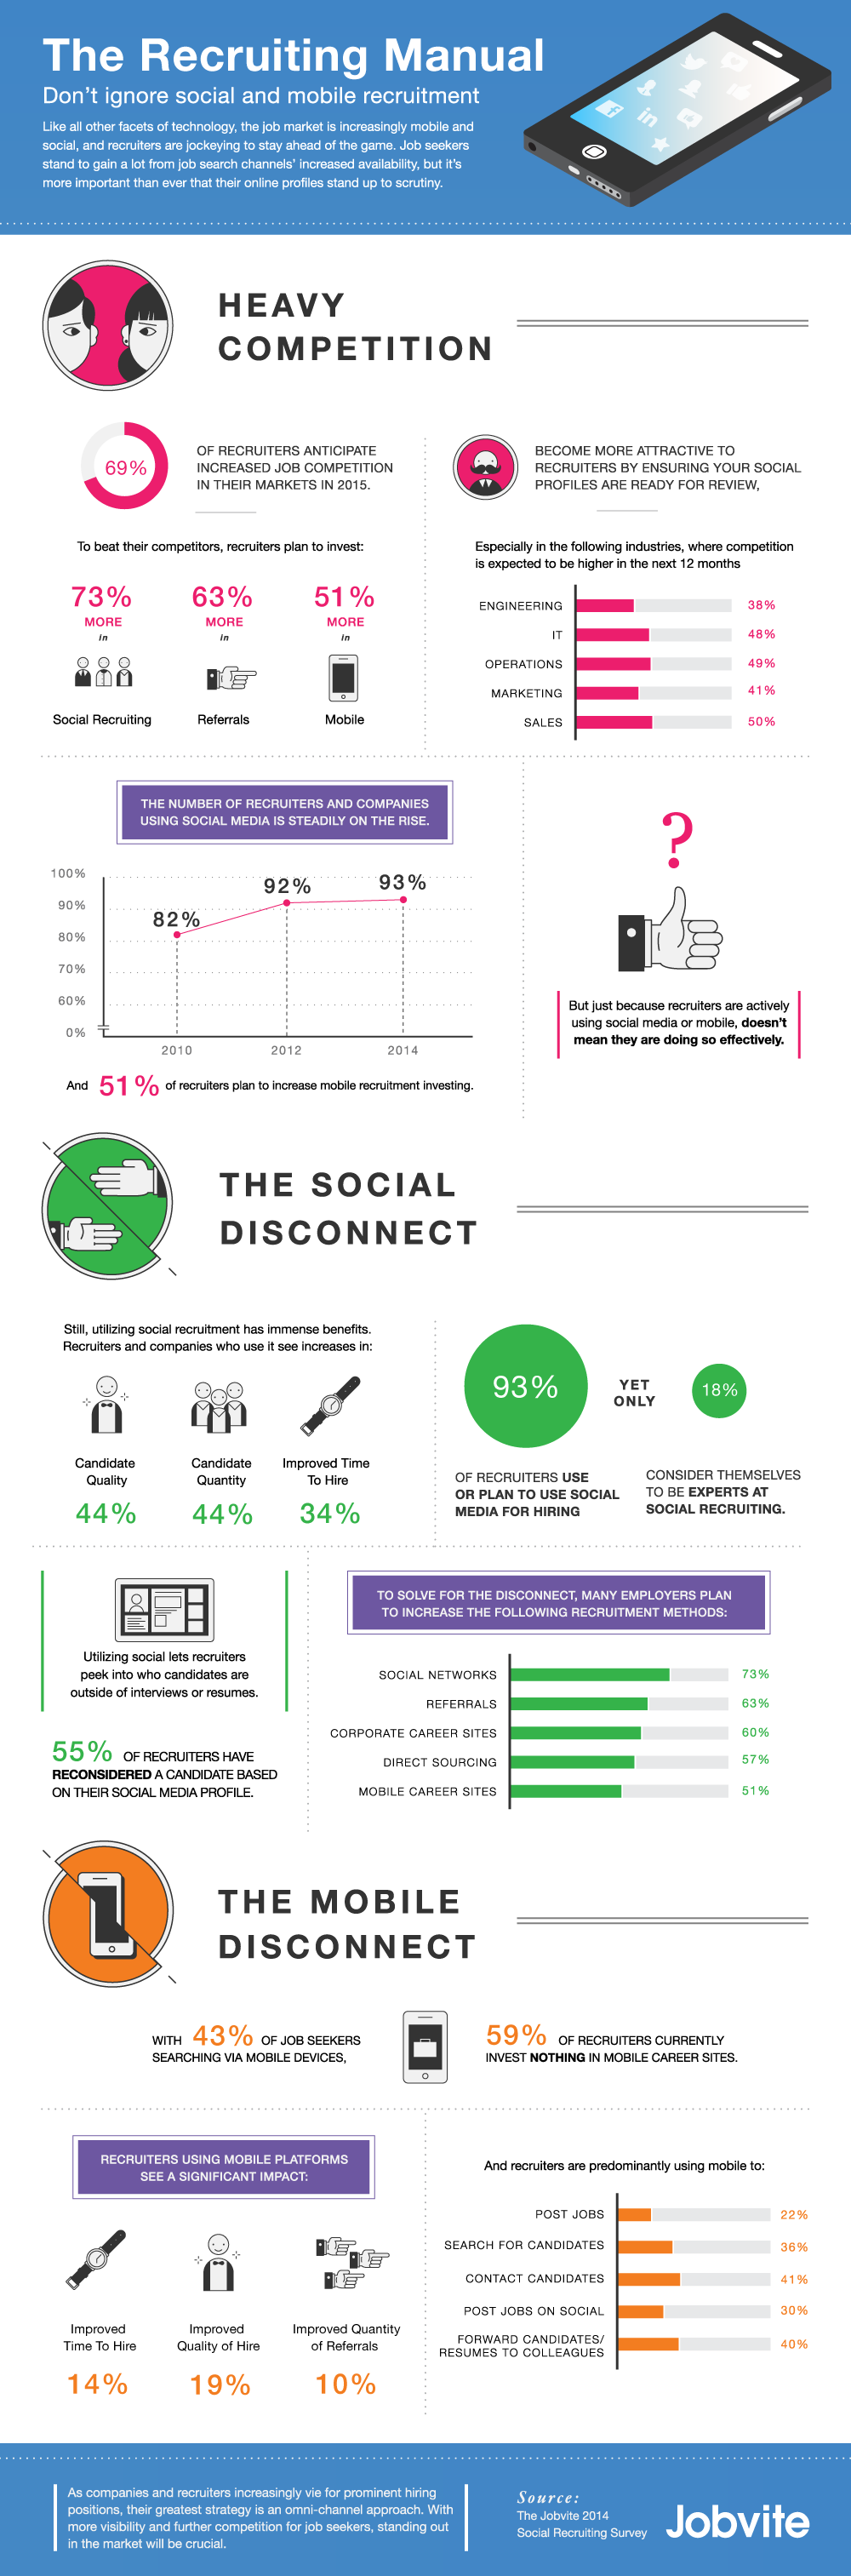 2014 Social Recruiting Survey Infographic